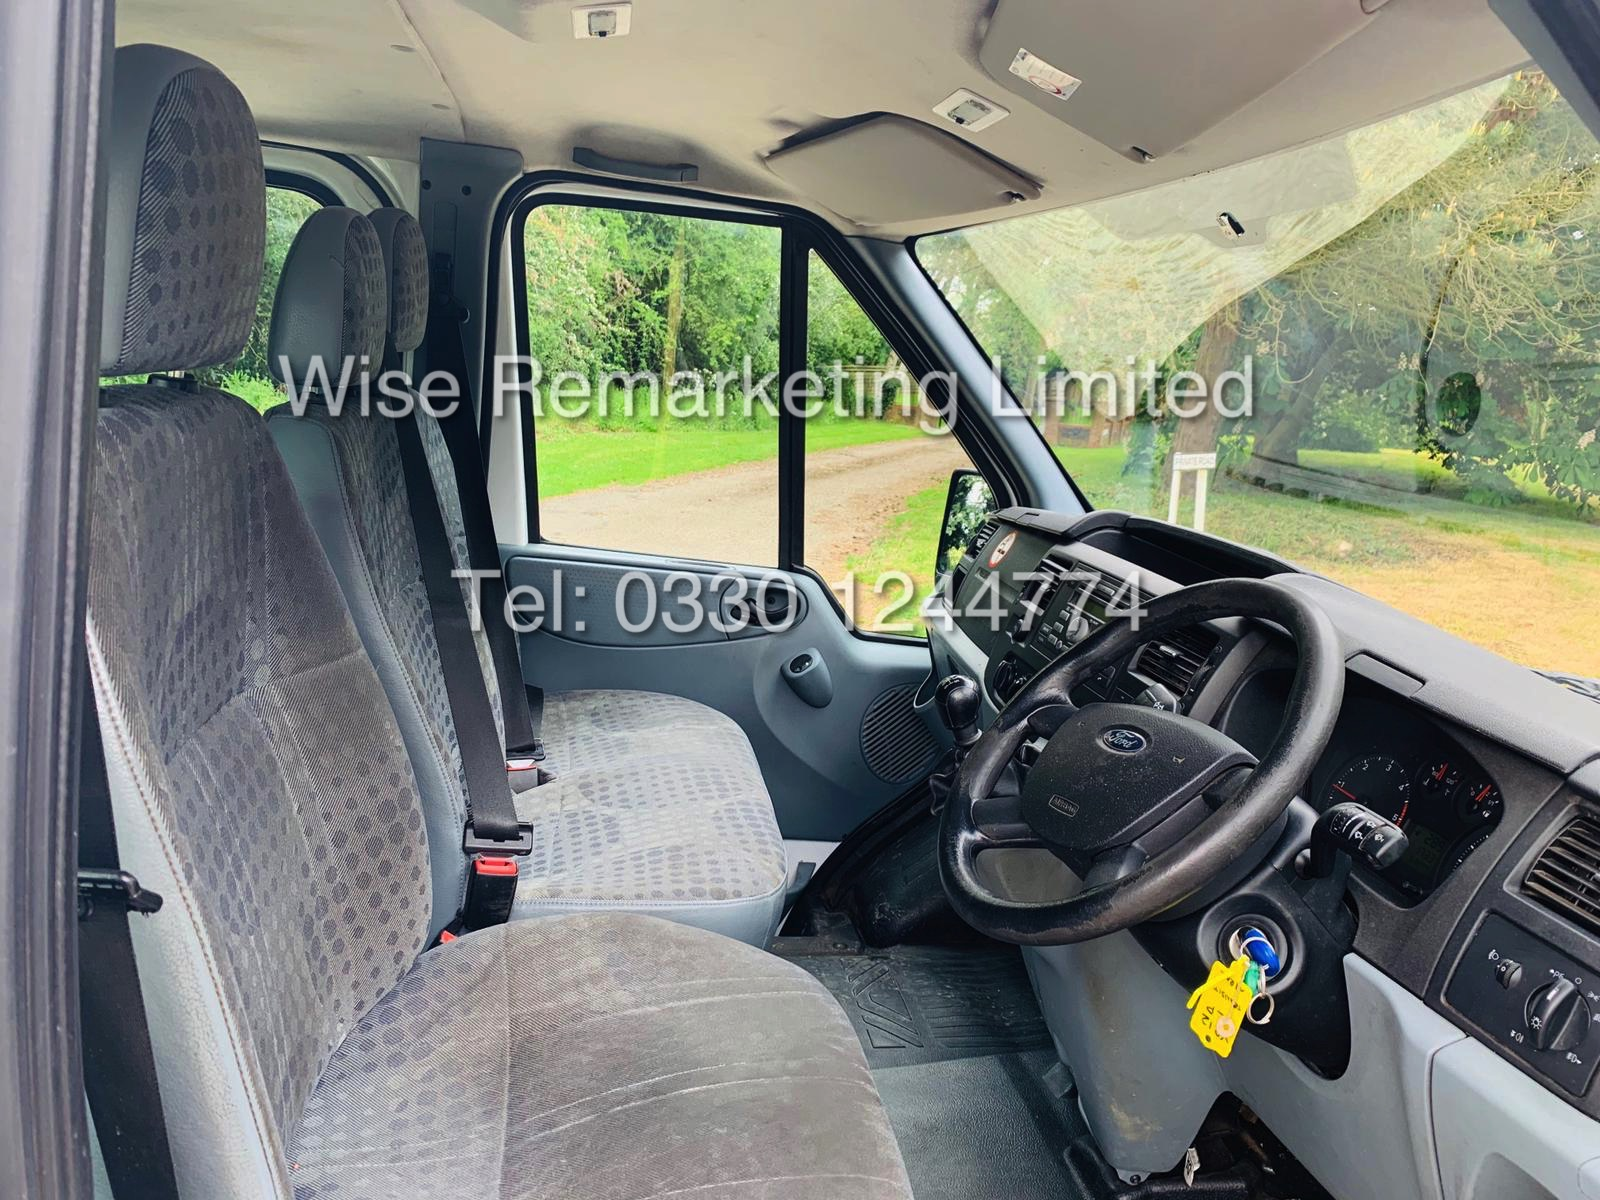 FORD TRANSIT T280 100 2.2 TDCI 6 SEATER KOMBI/CREW VAN 2012 *6 SPEED* - Image 11 of 22